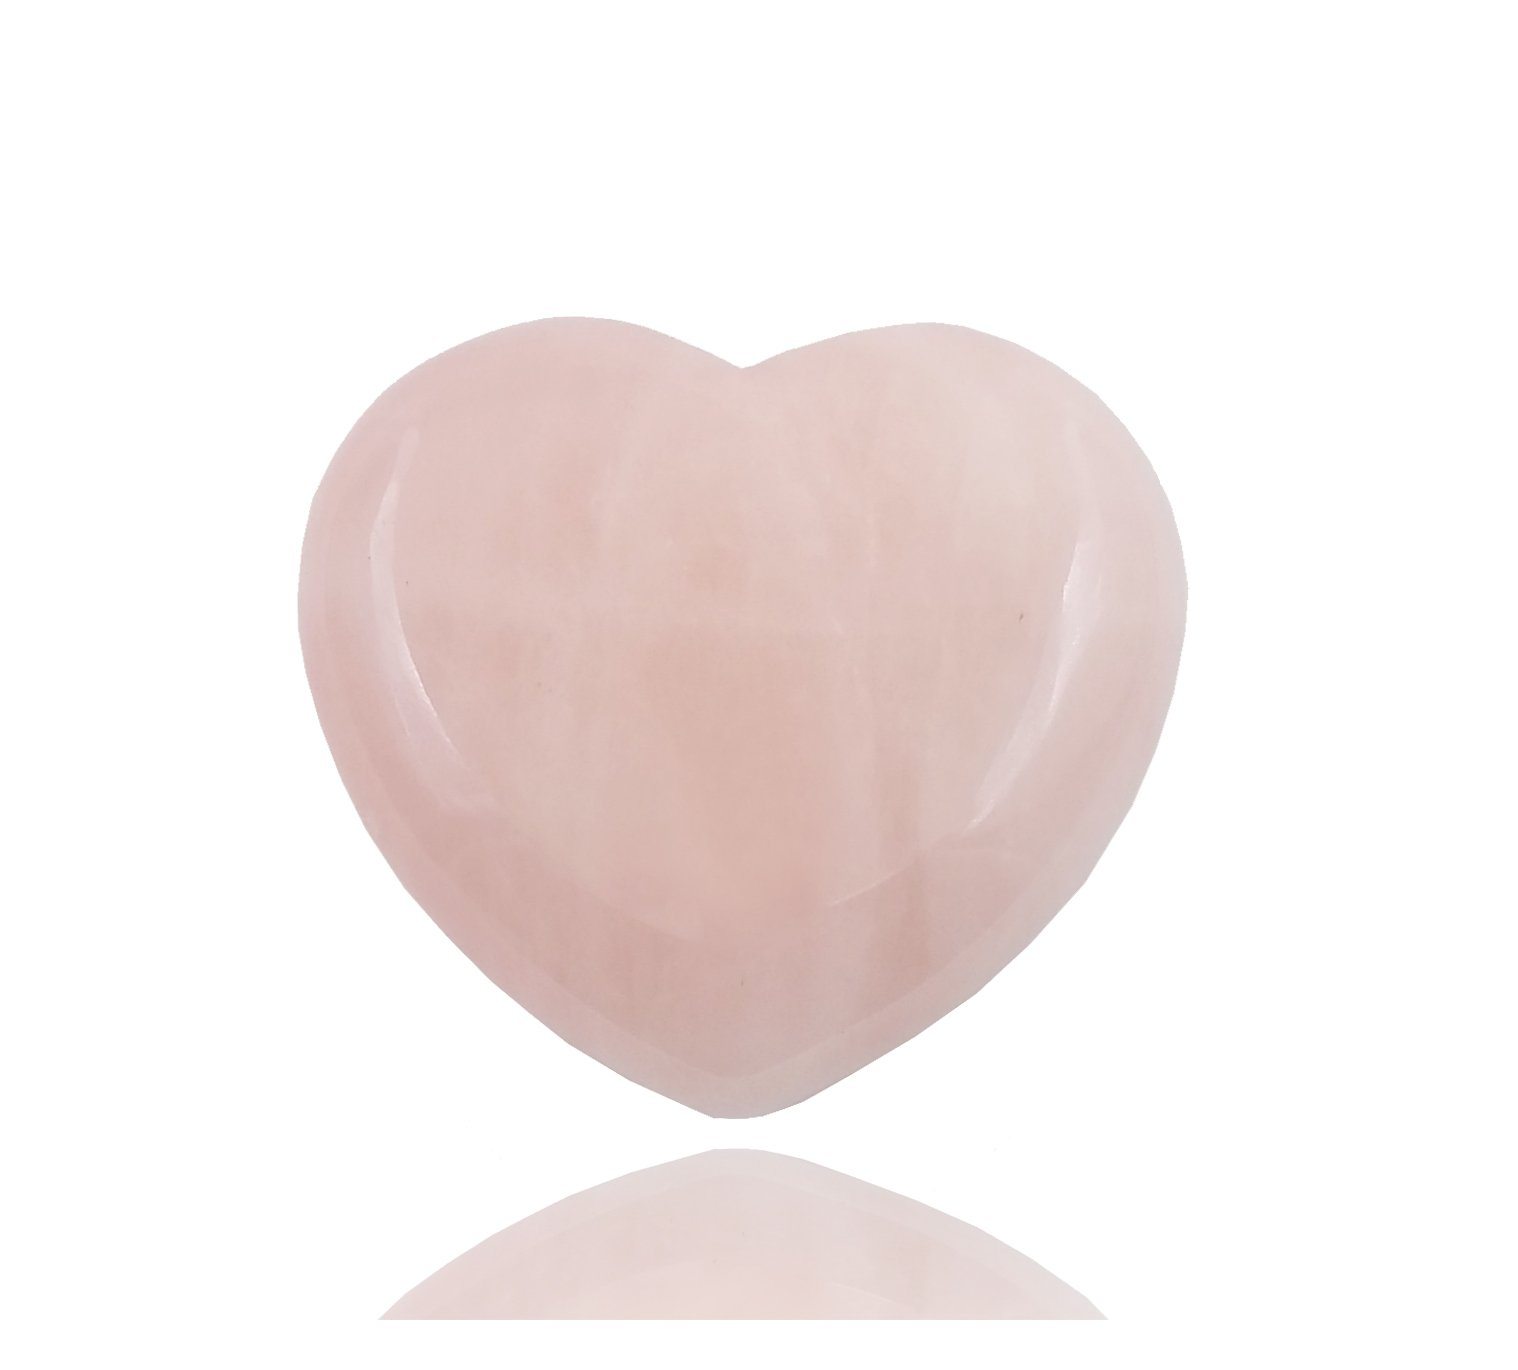 THINK POSITIVE Natural Rose Quartz Heart Love Healing Crystal Palm Stone (PINK)